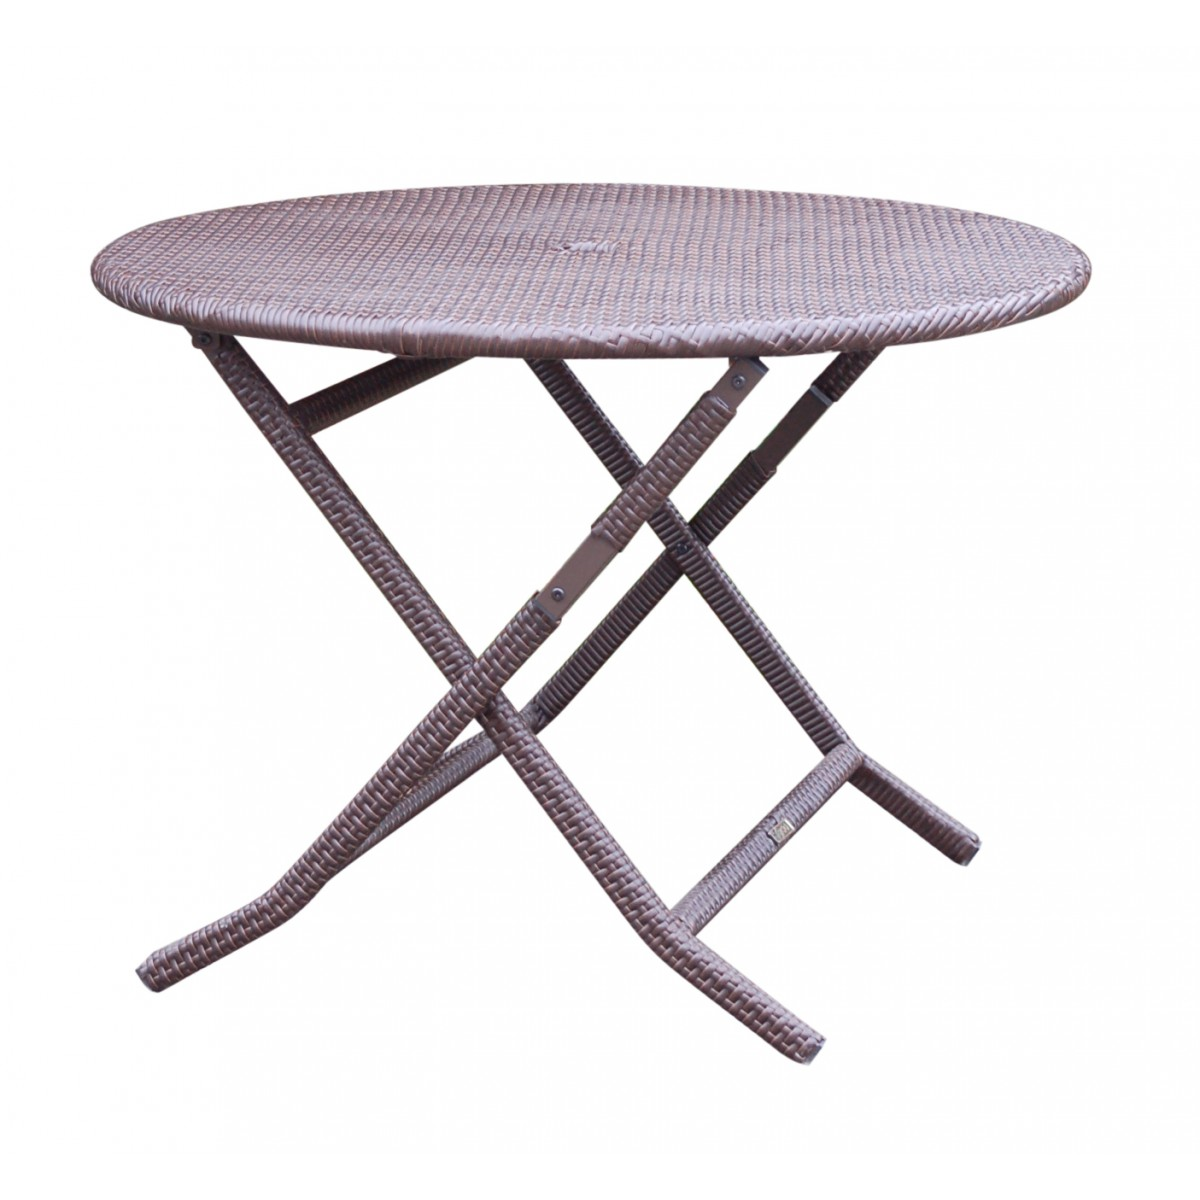 cafe round folding table with wicker on leg. Black Bedroom Furniture Sets. Home Design Ideas